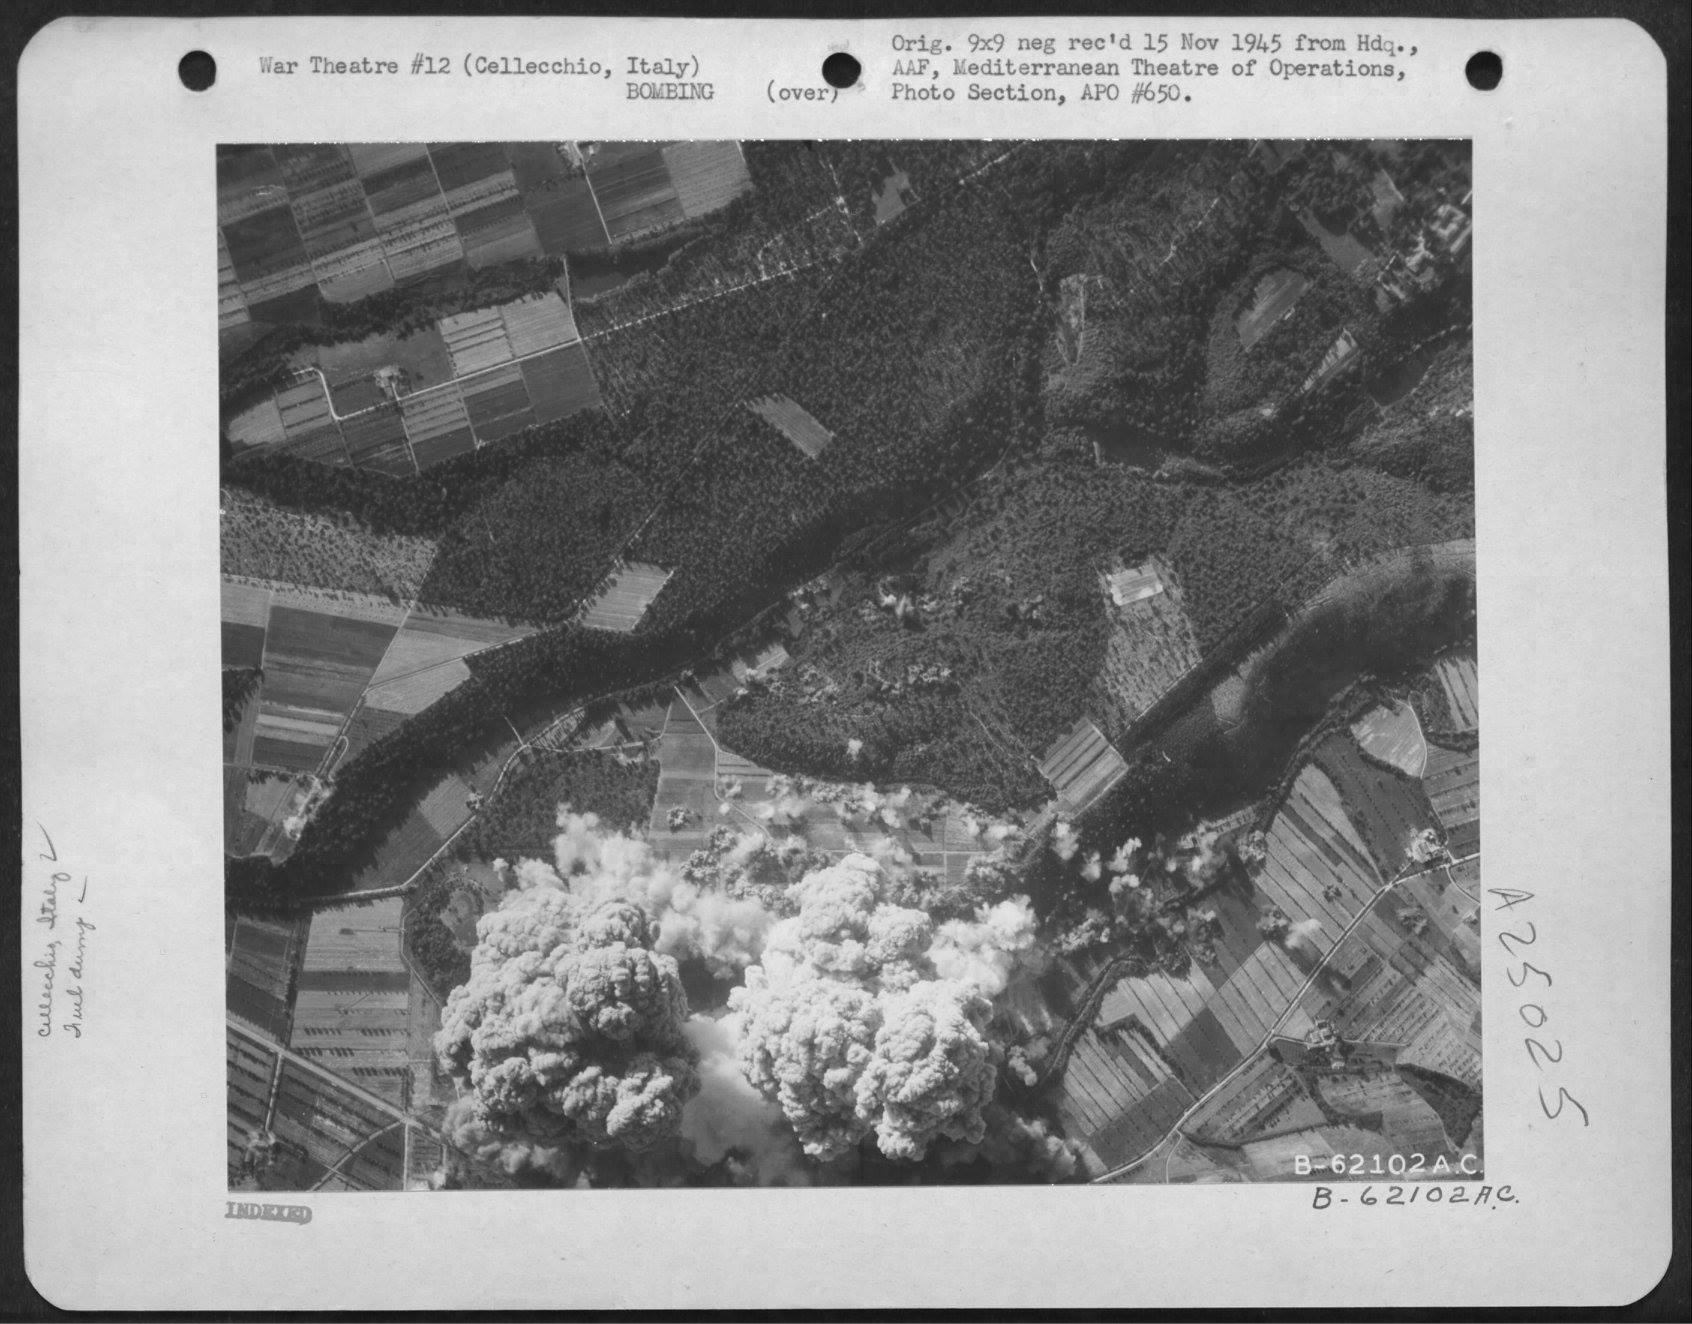 USAAF B 26 Marauders with pin point accuracy hit the Storage Dumps nr Cellecchio Italy 7 Jul 1944 04